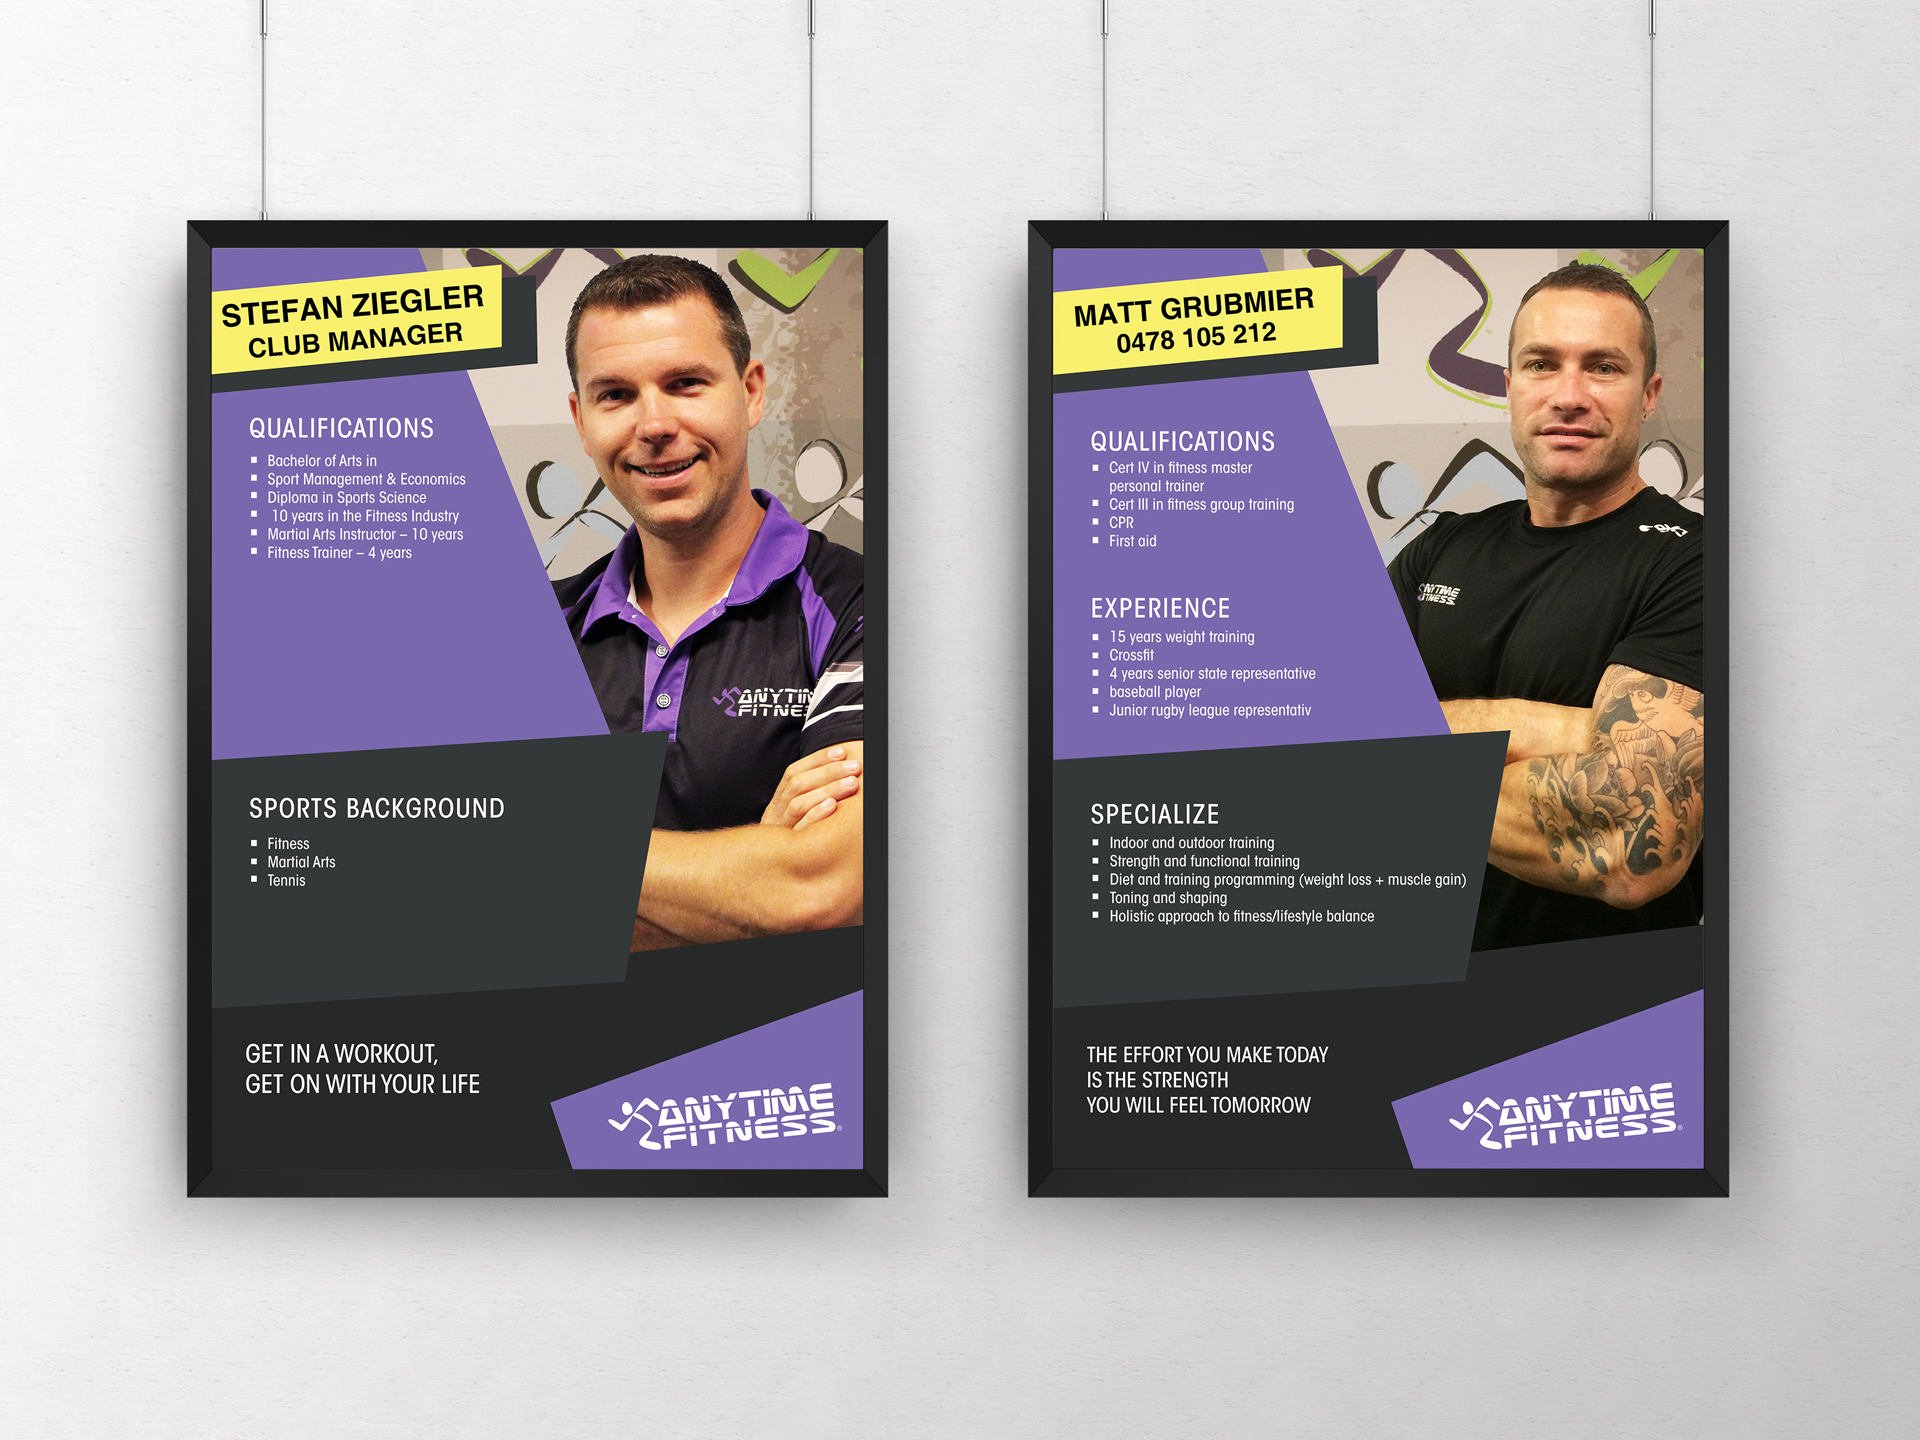 anytime fitness business cards related keywords anytime fitness business cards long tail. Black Bedroom Furniture Sets. Home Design Ideas